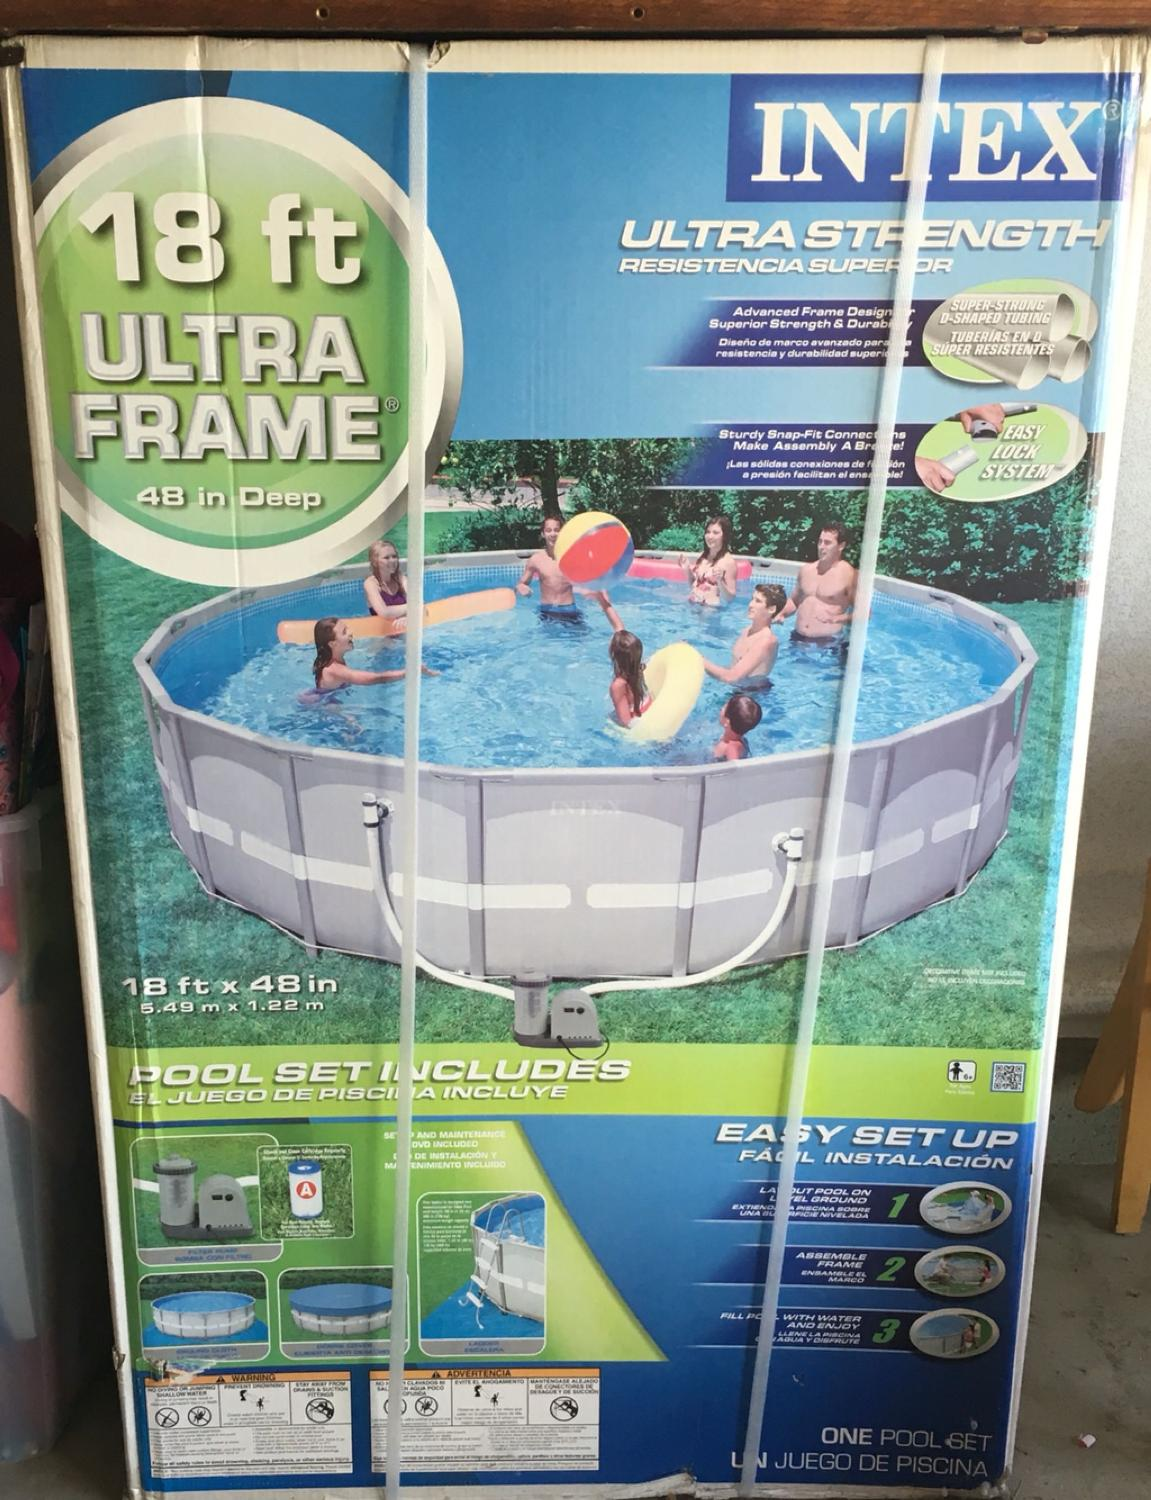 Find more Intex 18 Ft. Ultra Frame Pool Brand New In Box- Make A ...